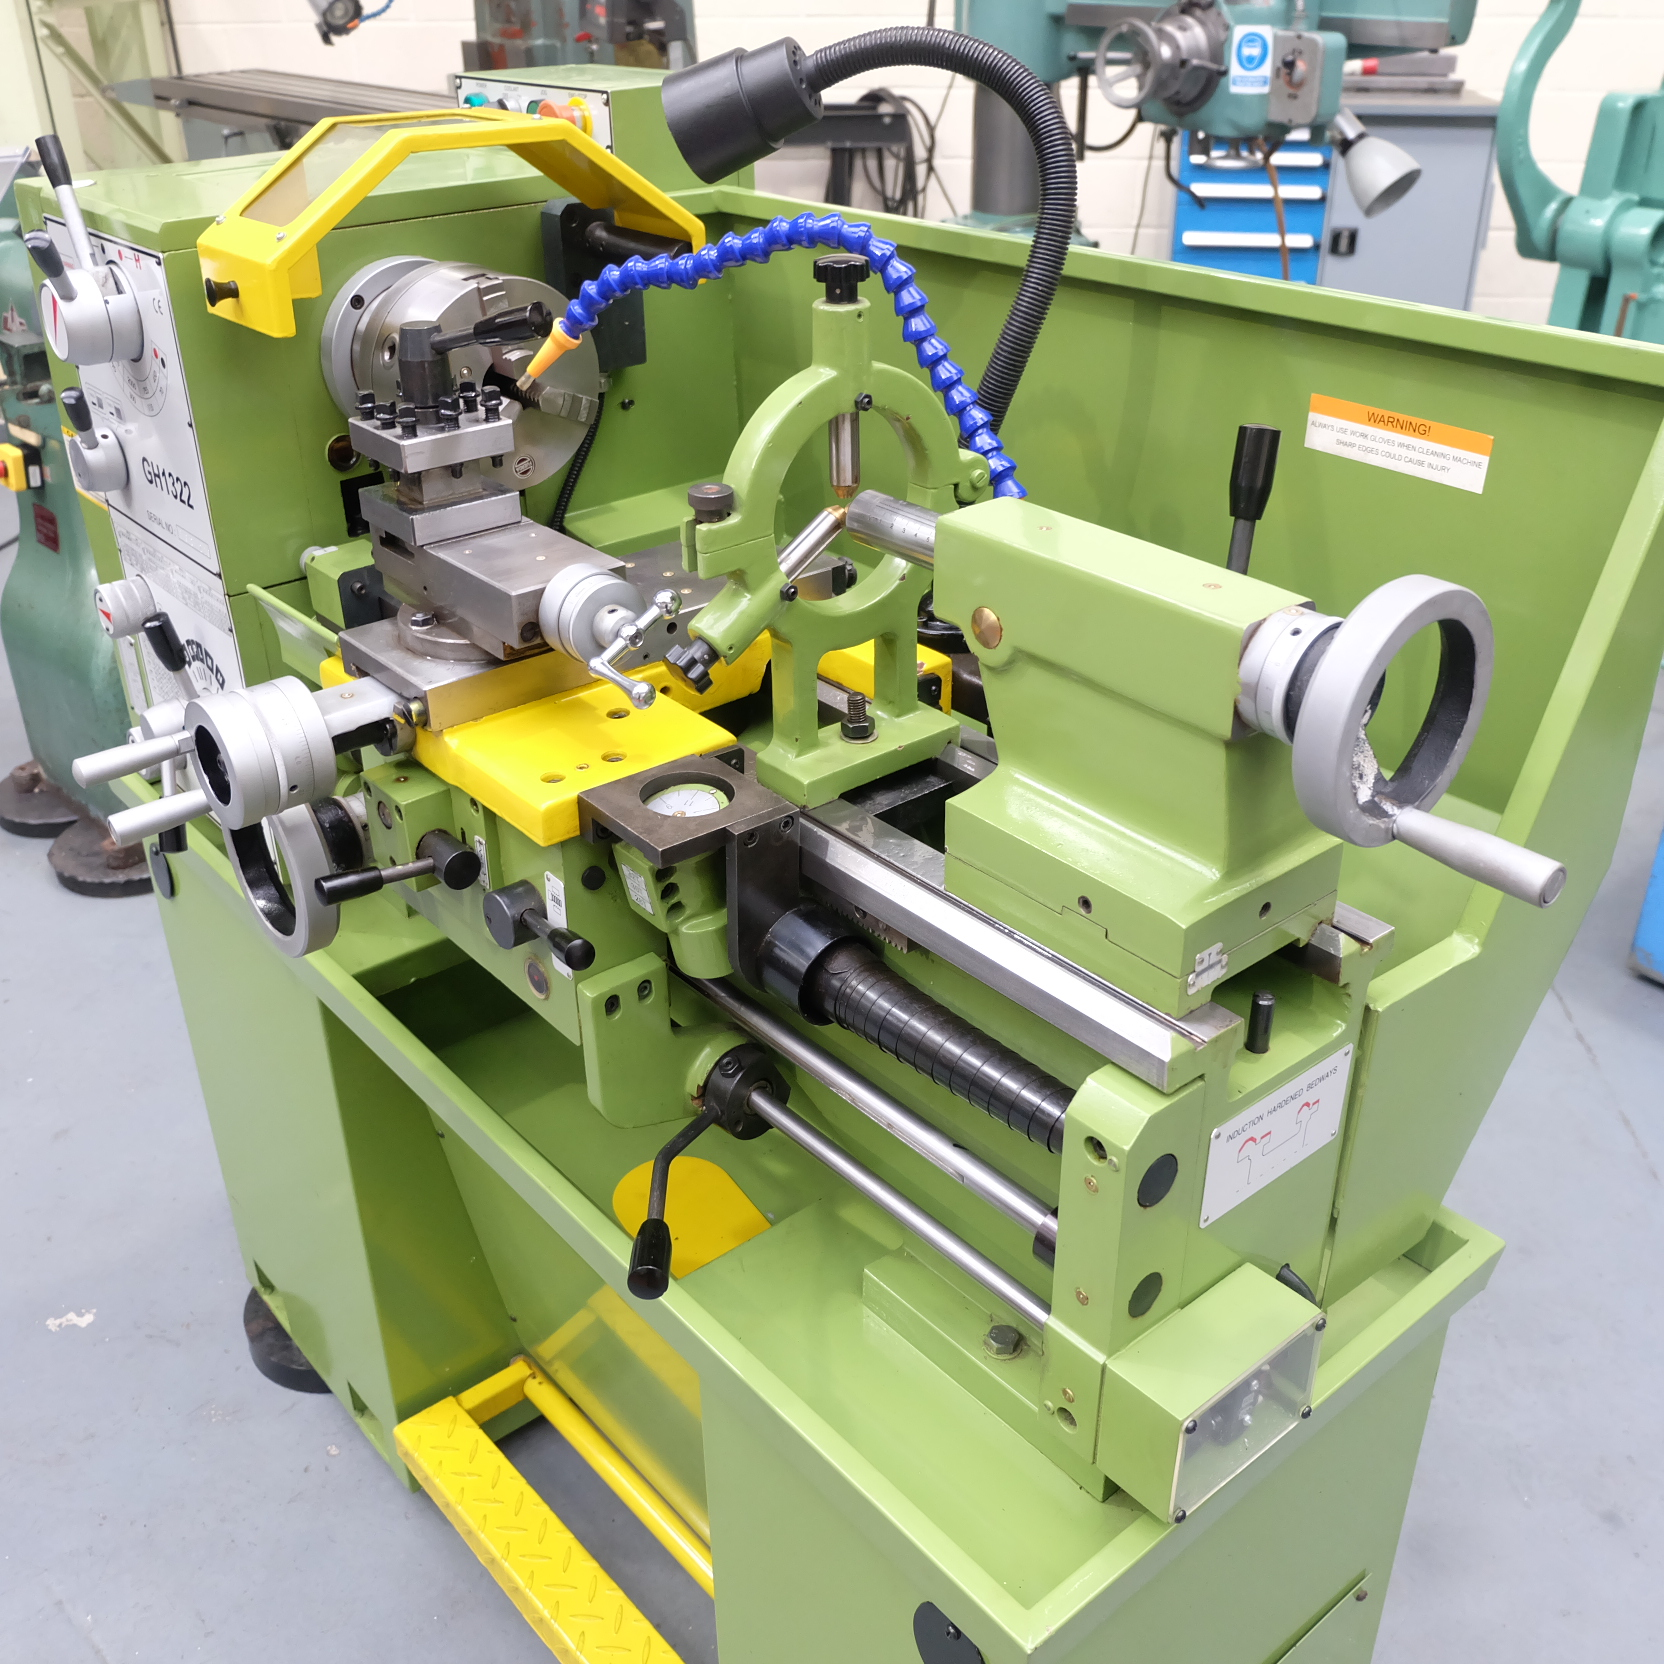 Warco Model GH 1322: Gap Bed Centre Lathe. - Image 6 of 10